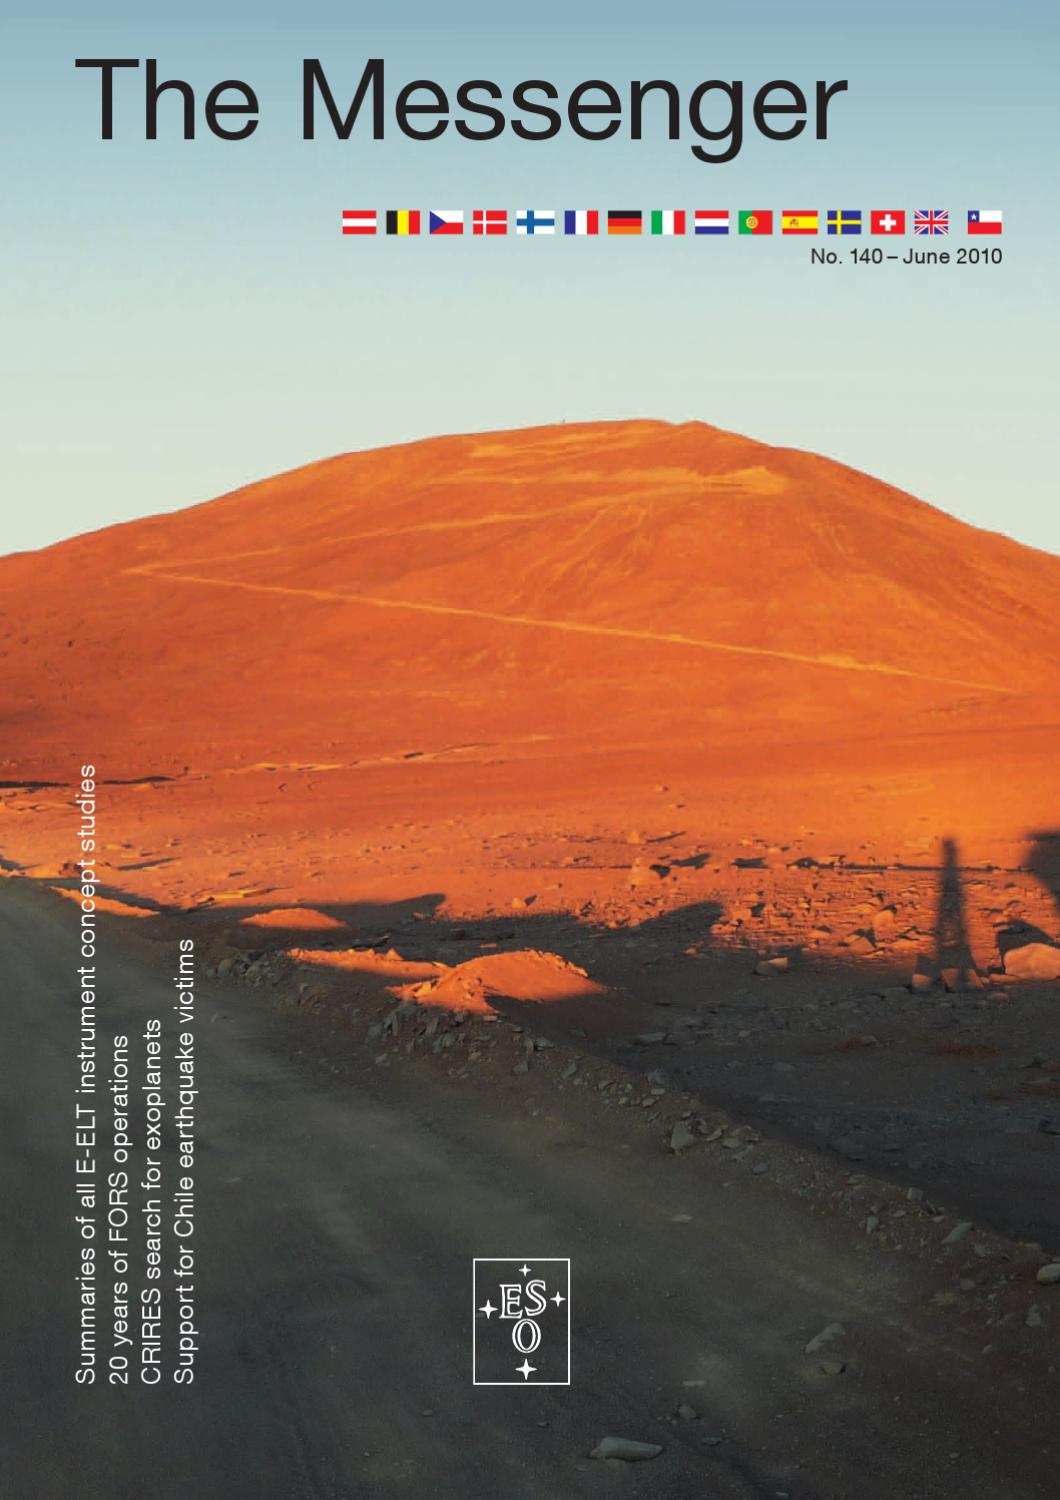 The Messenger No  140 by European Southern Observatory - issuu